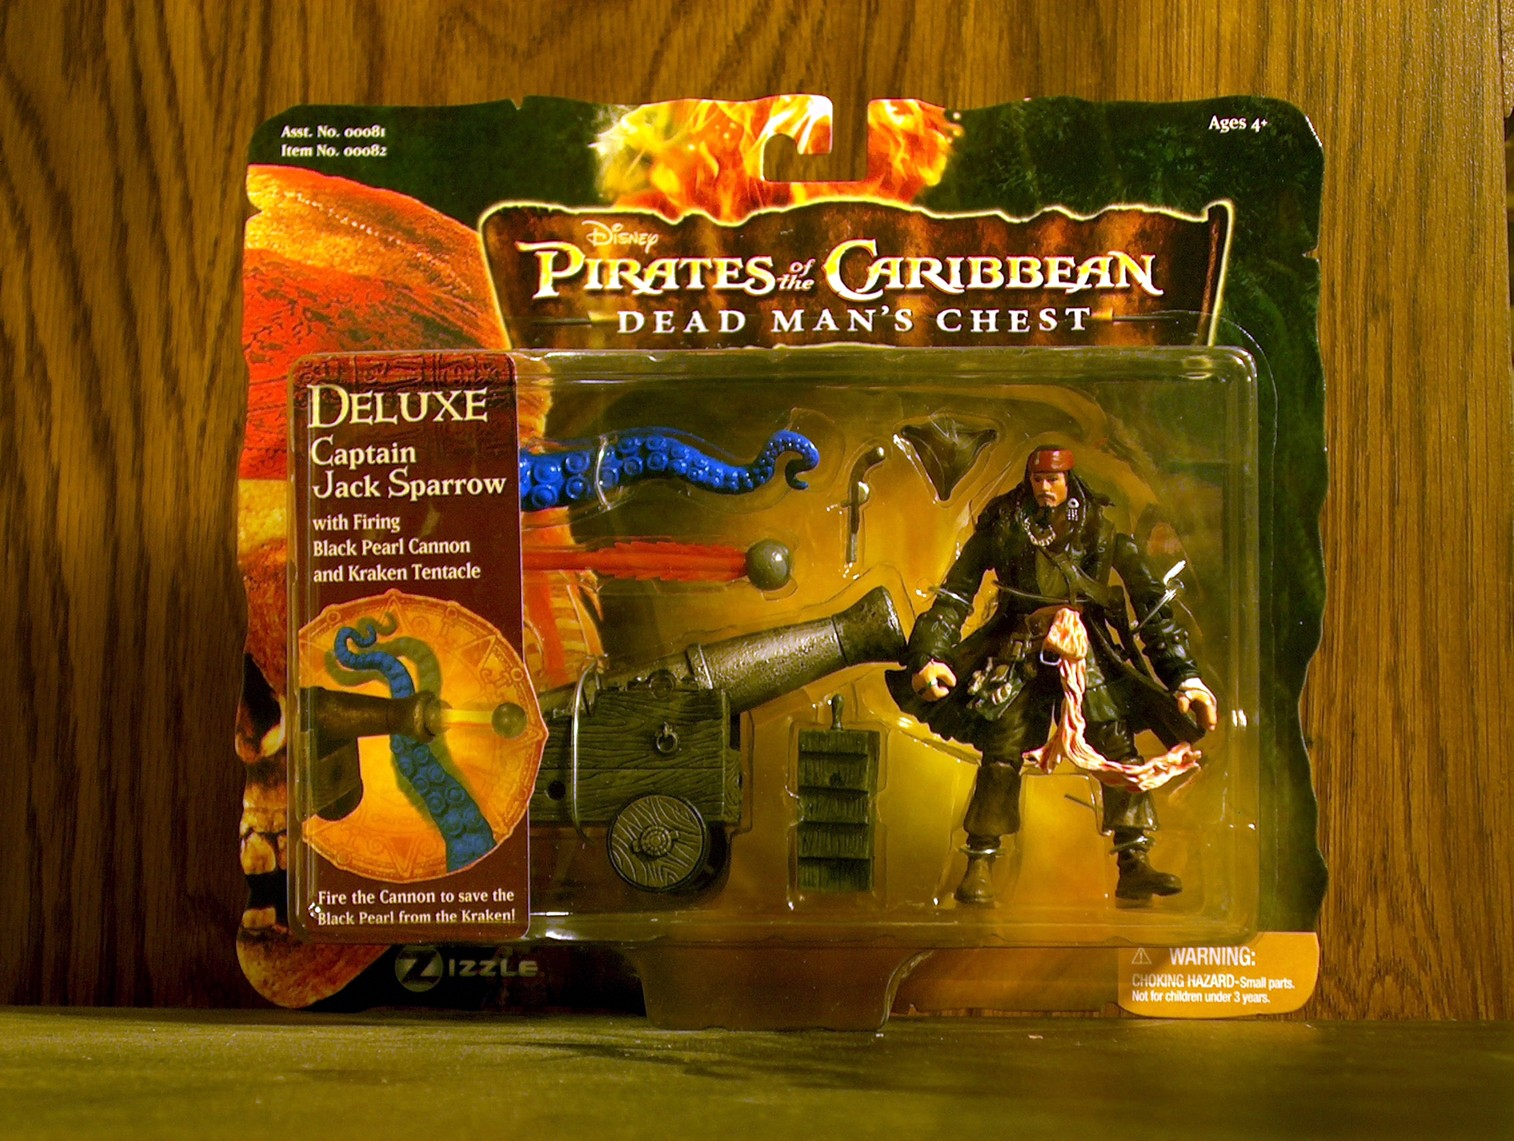 Deluxe Captain Jack Sparrow with Firing Black Pearl Cannon and Kraken Tentacle